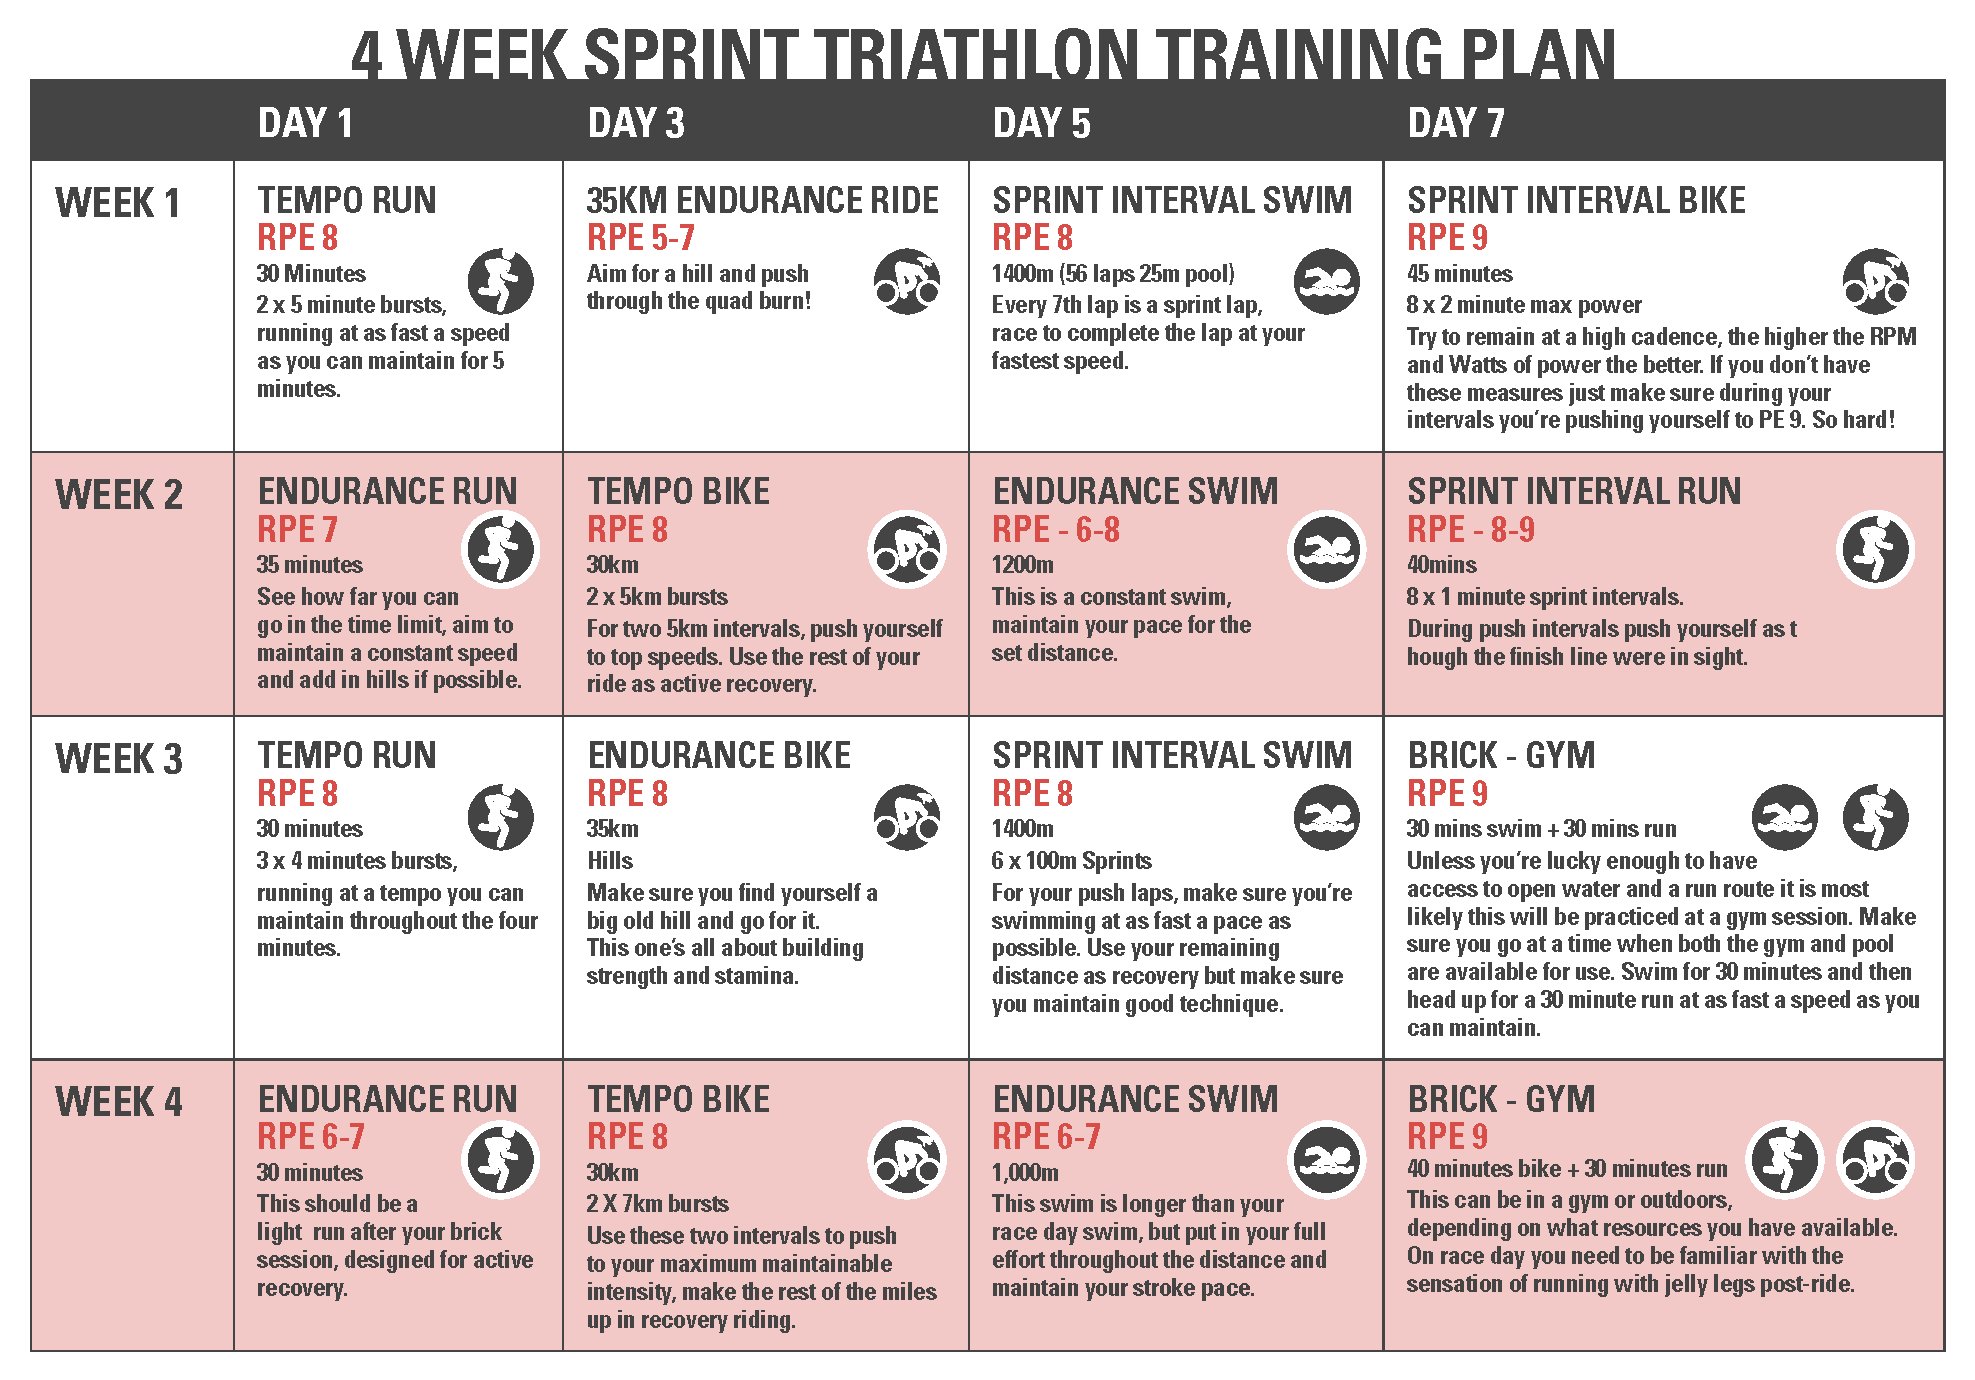 4 Week Sprint Triathlon Training Plan